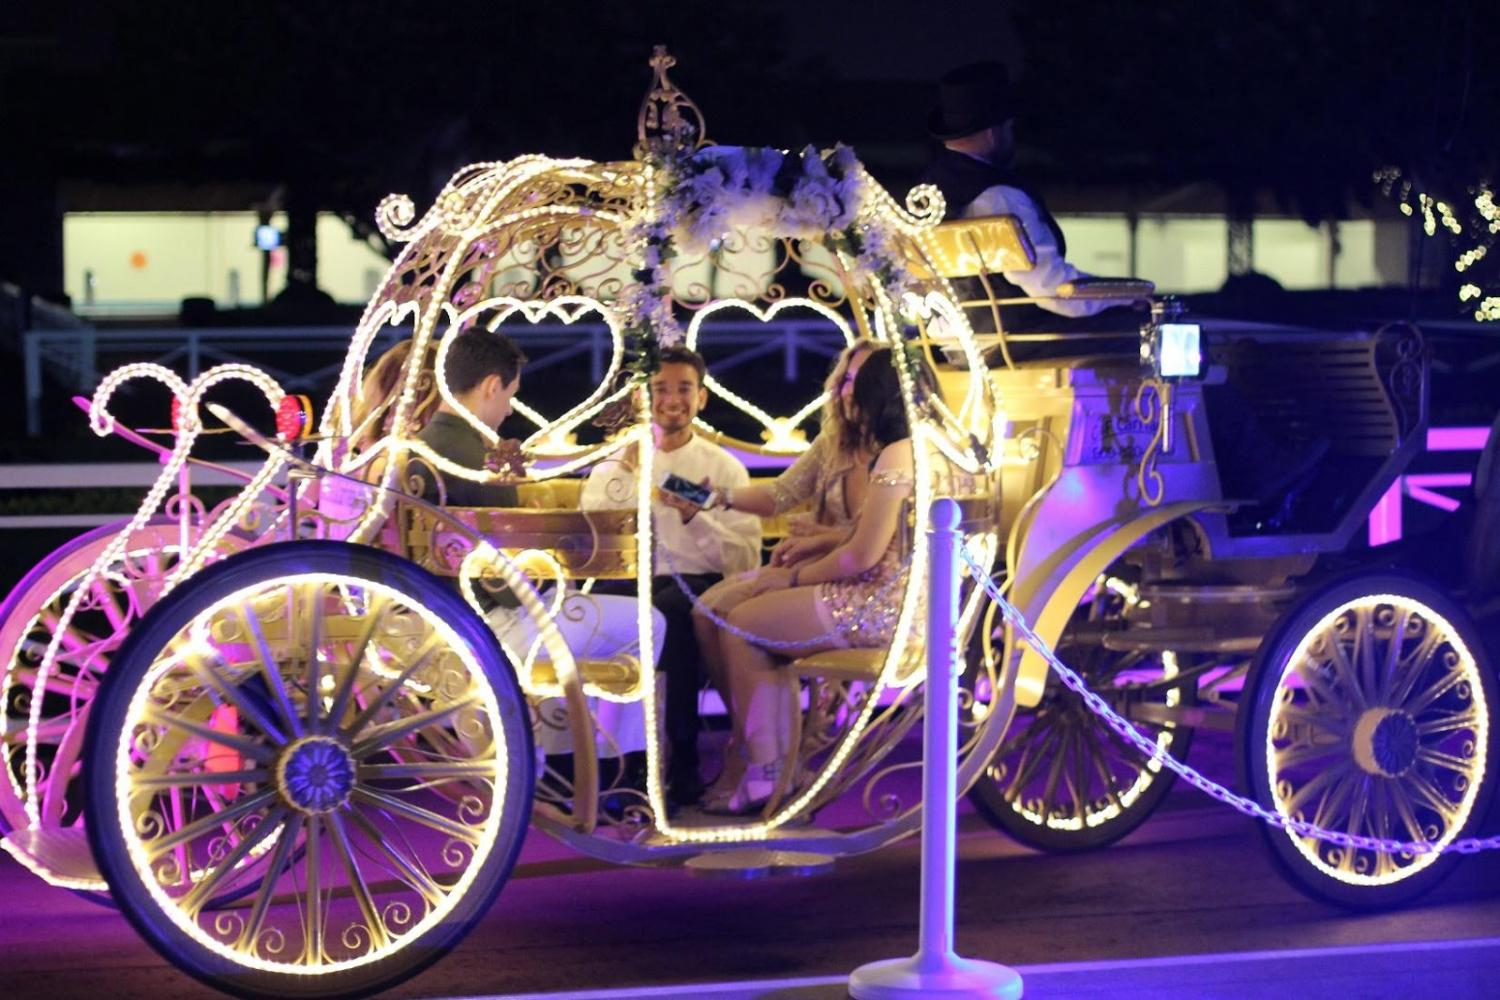 This year's homecoming offered carriage rides as its main attraction.